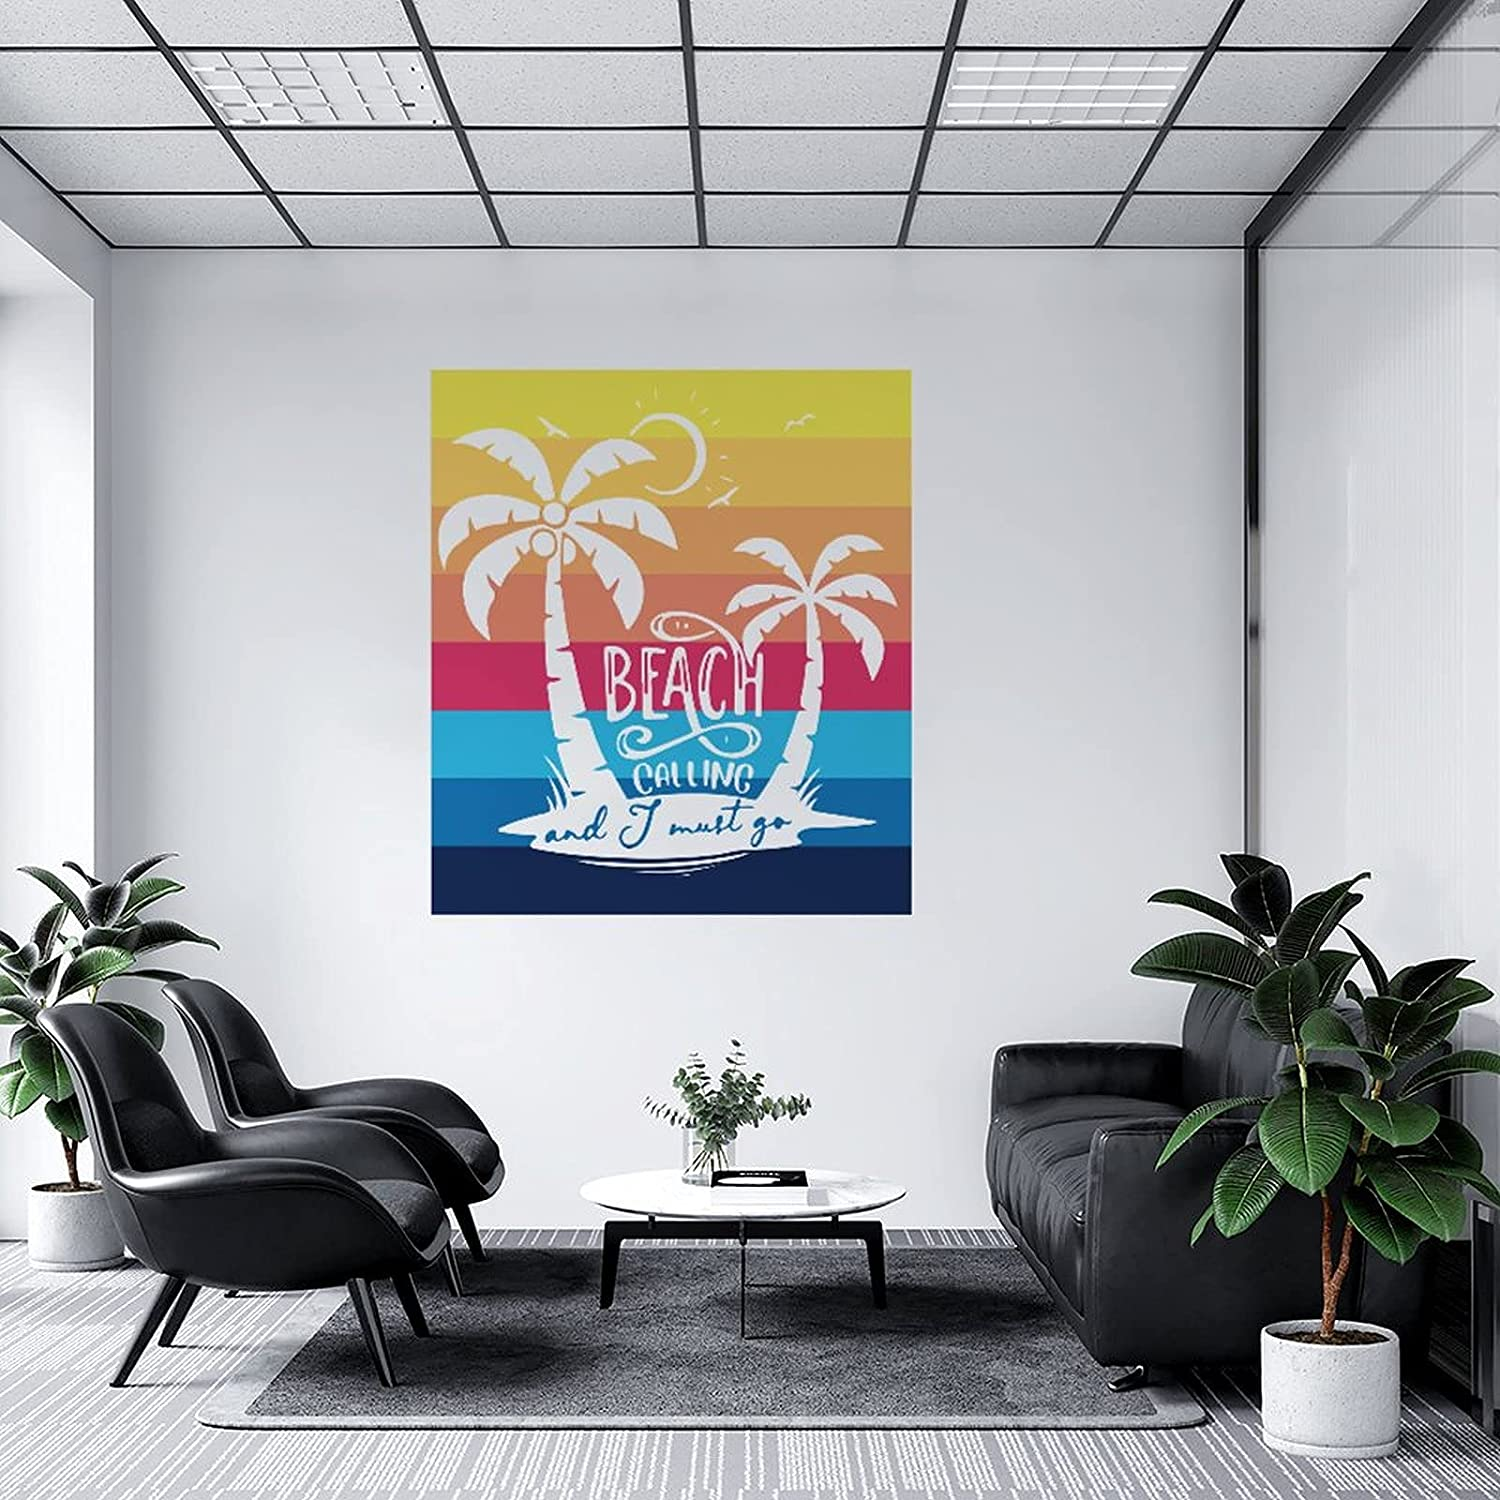 Wall Max 84% OFF Decal The Beach is Calling and I Gorgeous Must Go Stickers DIY